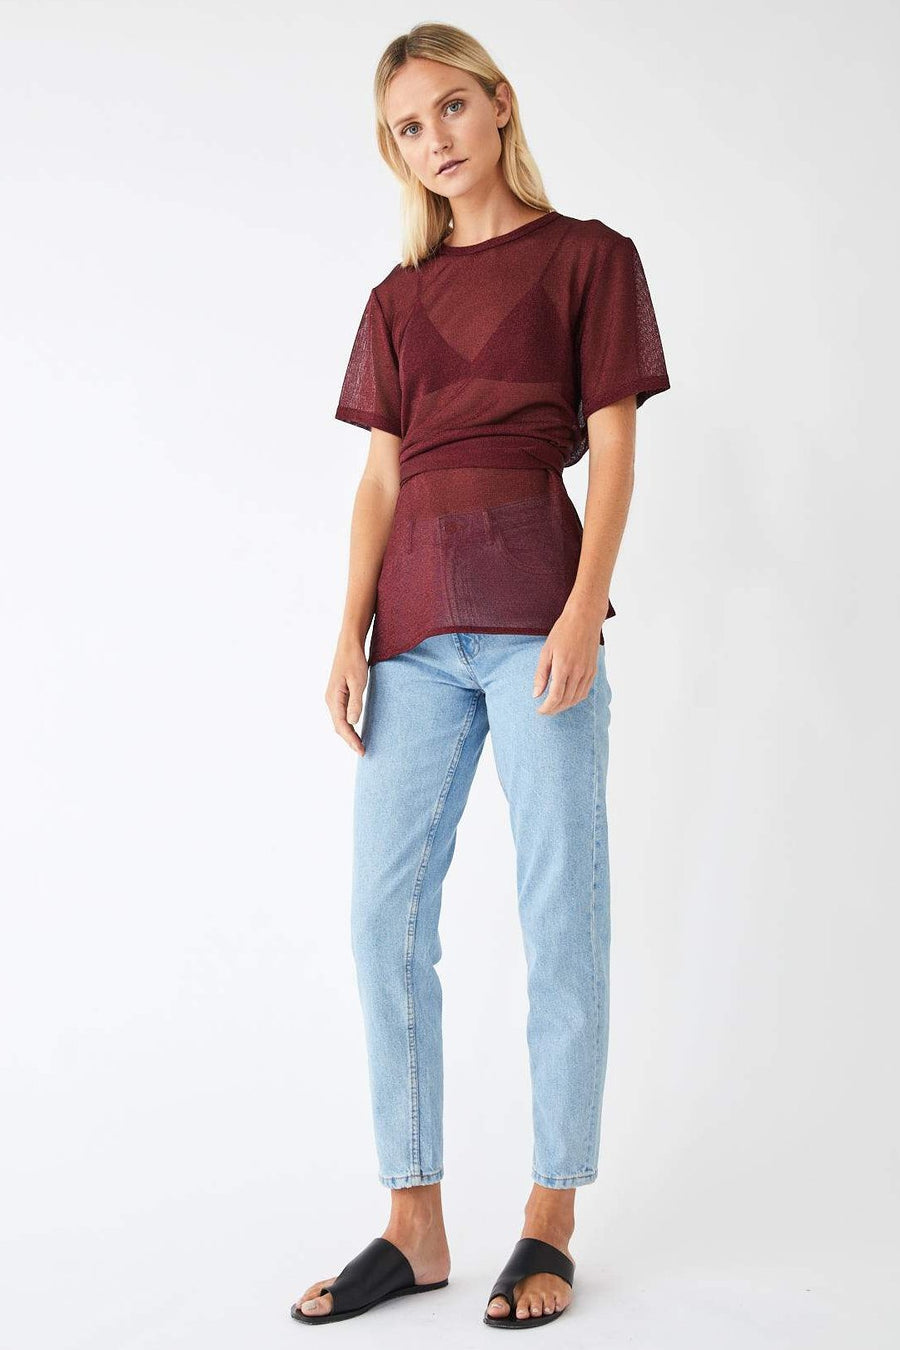 Motion Metallic Tee / Merlot